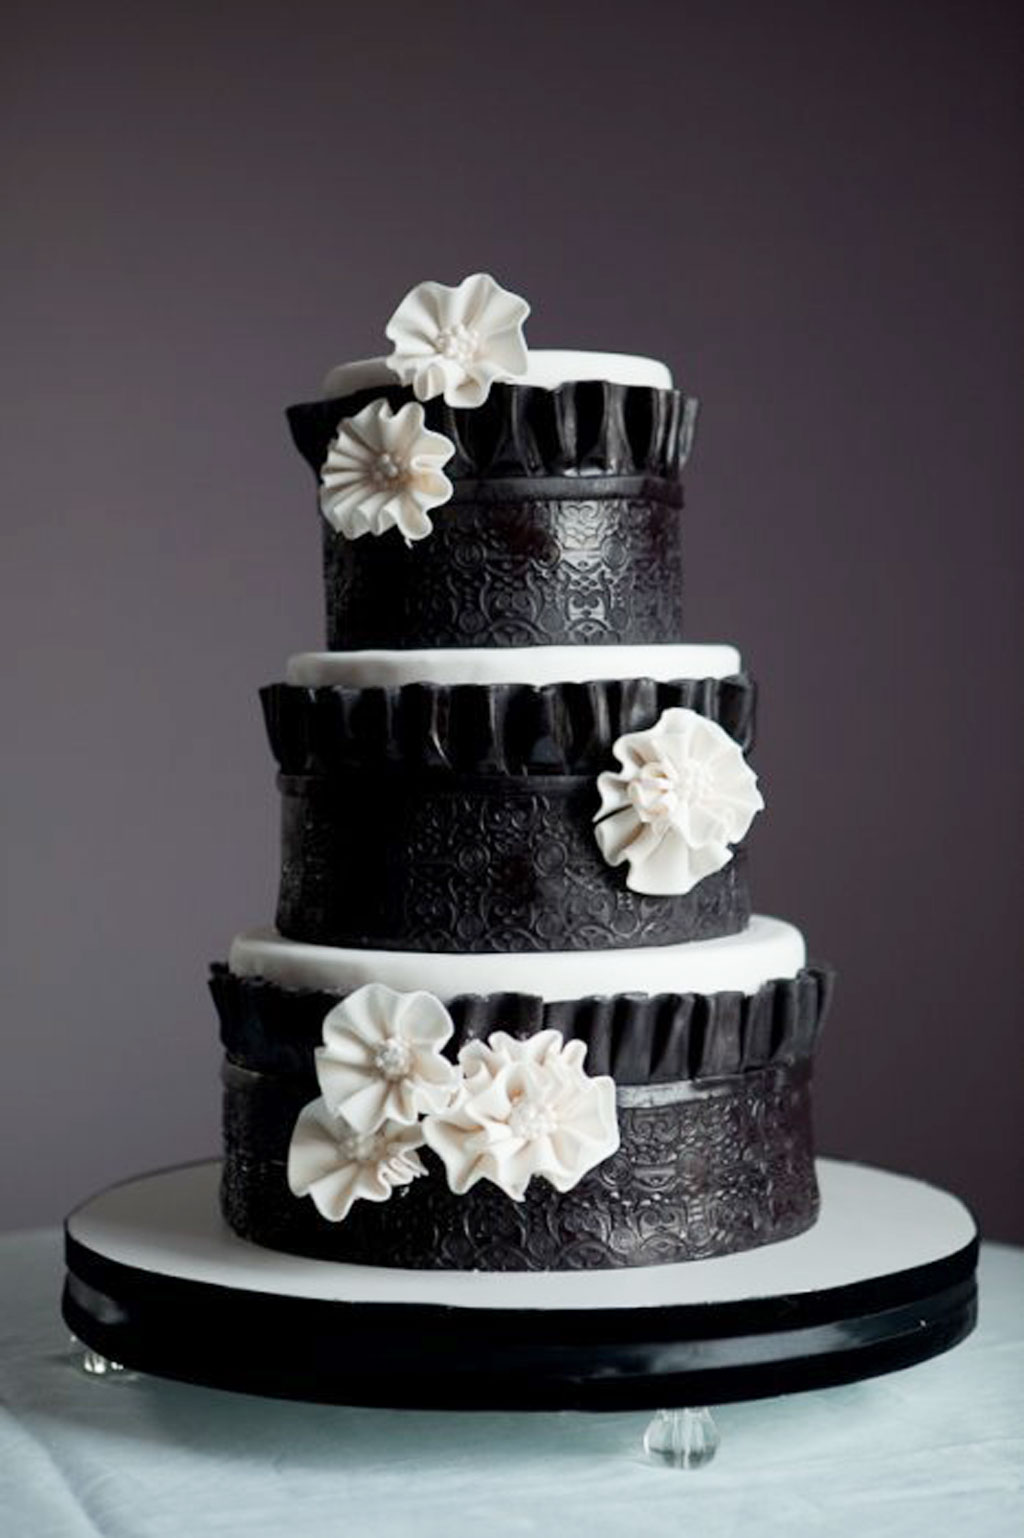 black white wedding cake decoration wedding cake cake ideas by. Black Bedroom Furniture Sets. Home Design Ideas